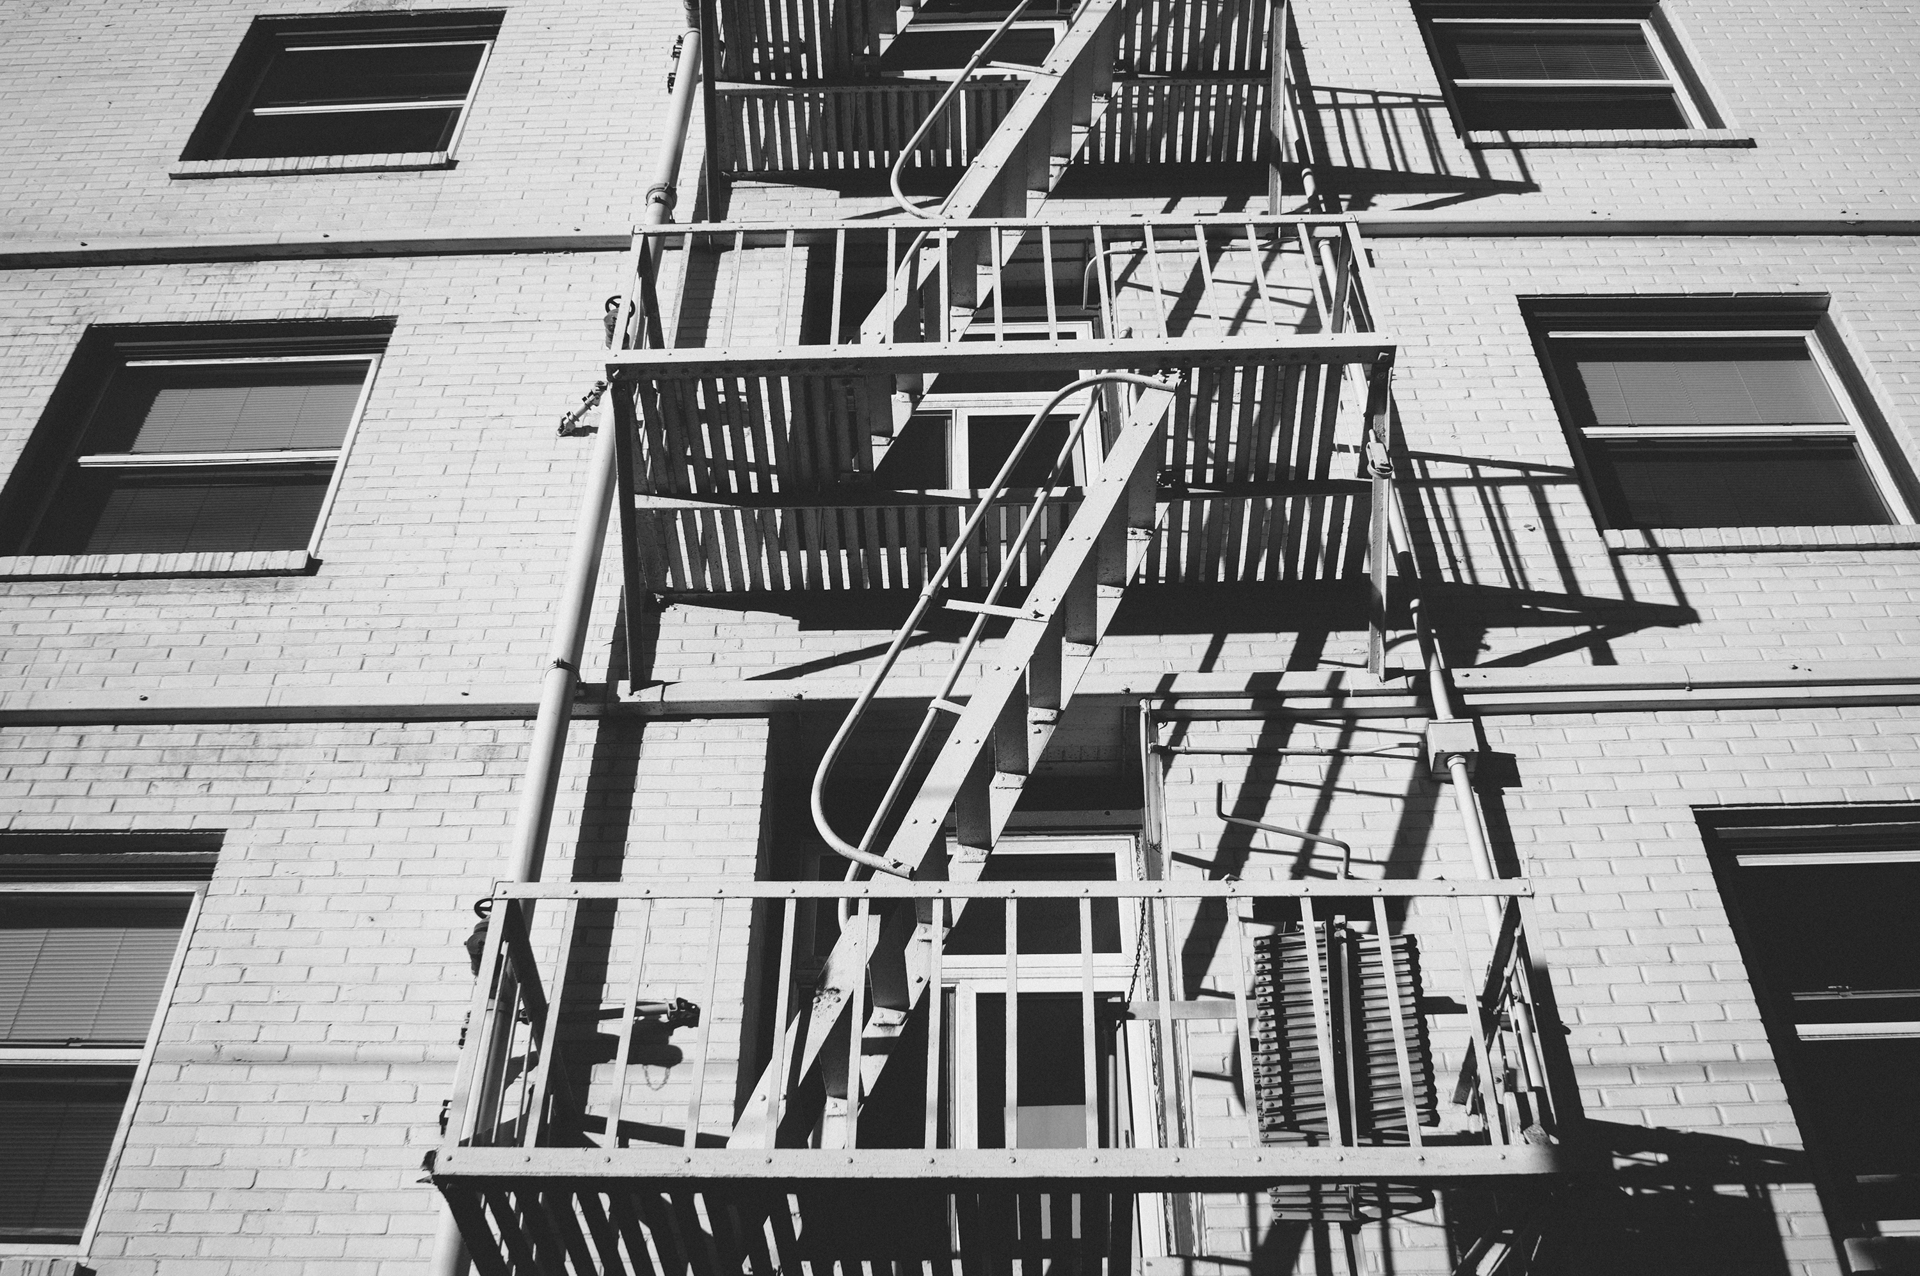 Apartment Building Fire Escape Ladder free stock photo of black-and-white, emergency, fire escape